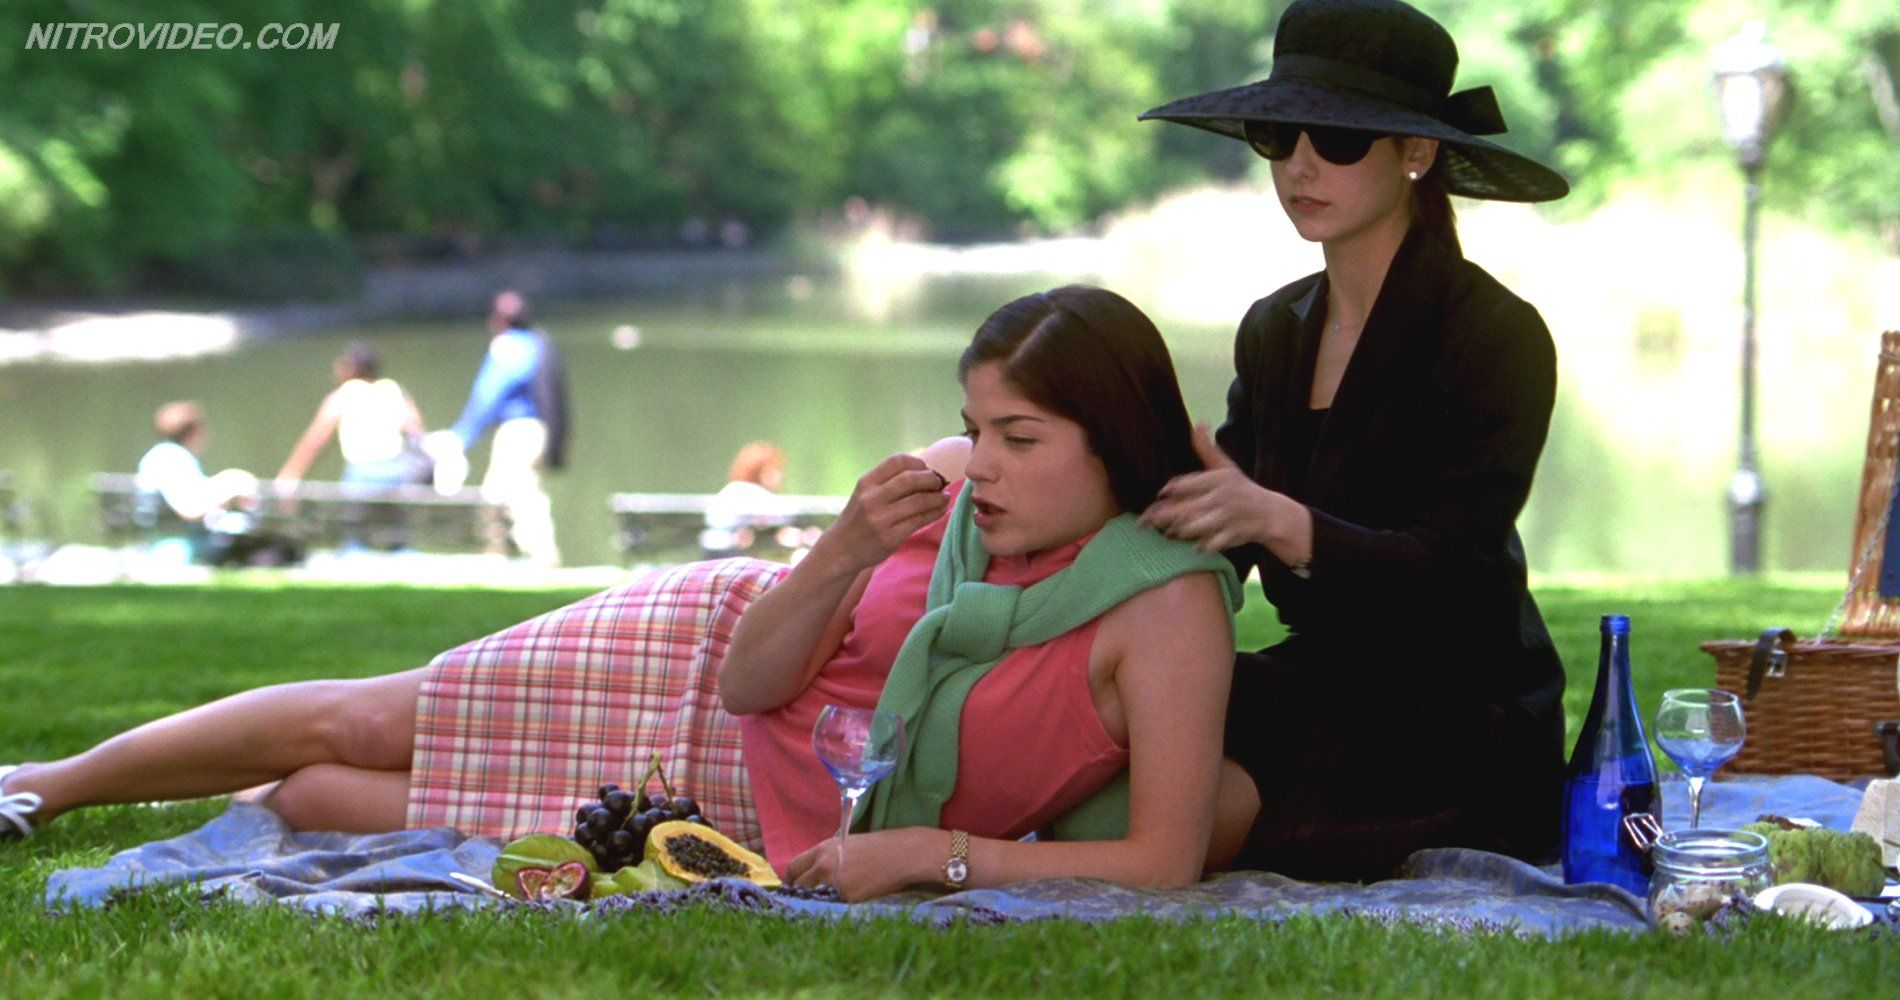 Quotes From The Movie Selma: Sarah Michelle Gellar & Selma Blair In Cruel Intentions